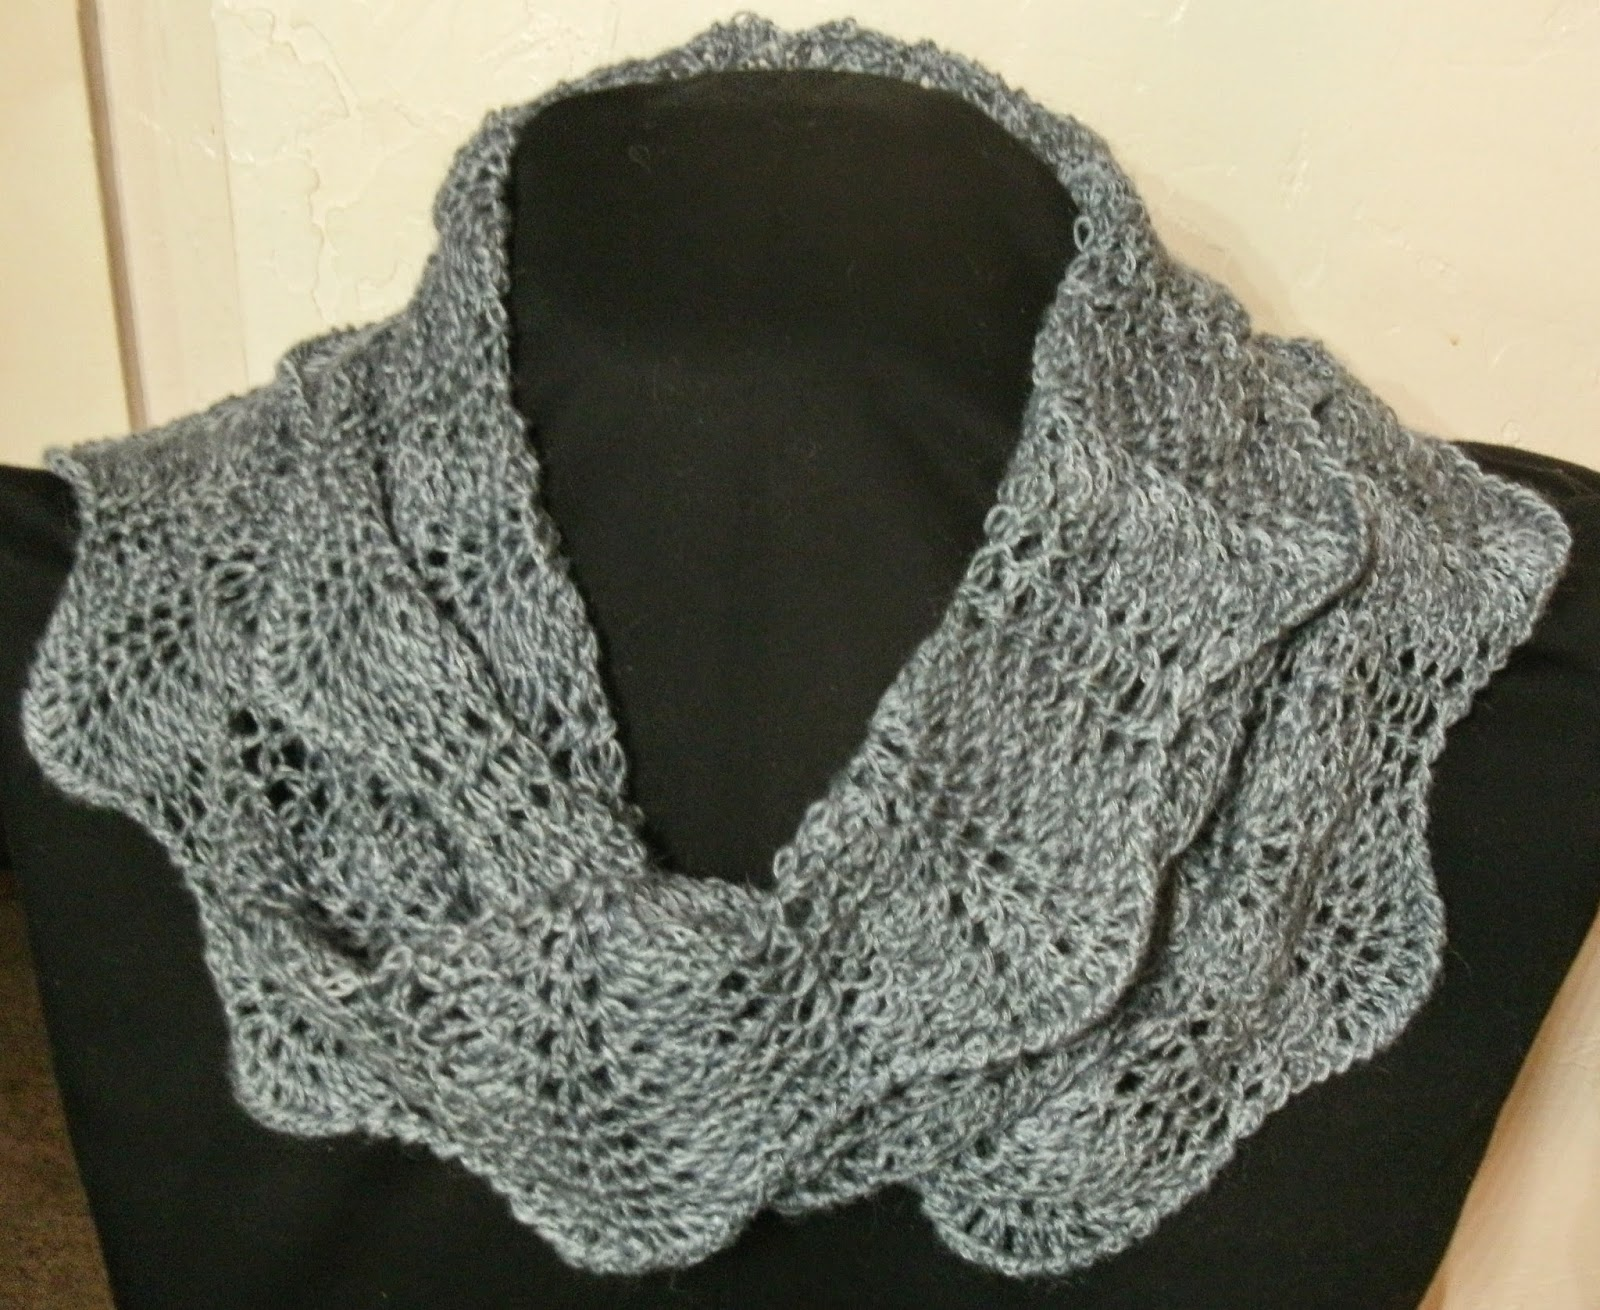 Stitch Whisper: Crochet Feather and Fan Mobius Cowl pattern for sale